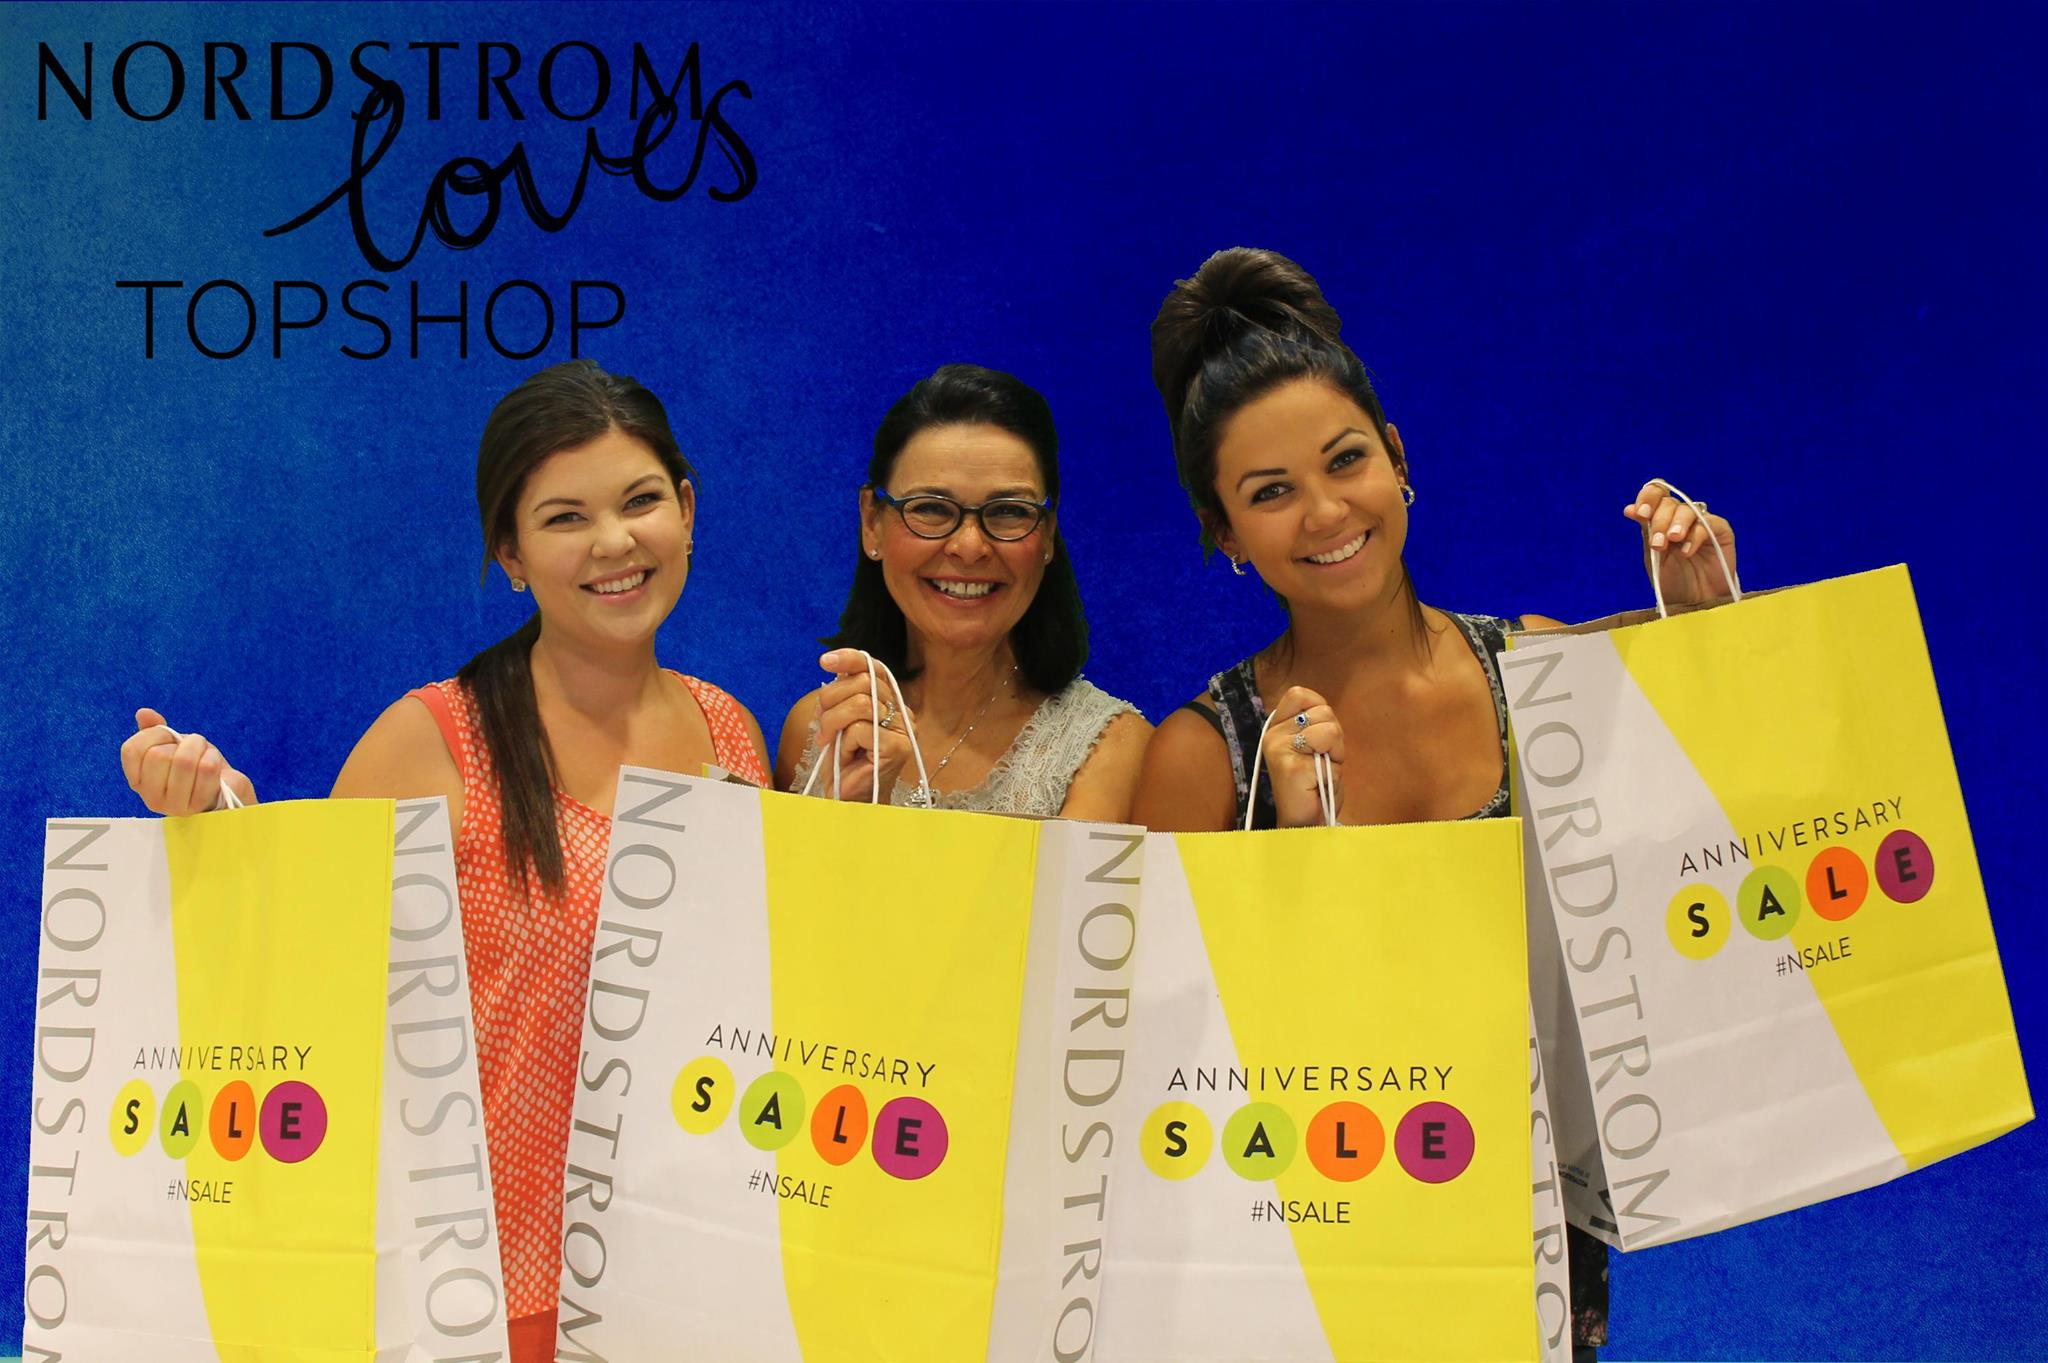 Nordstrom TopShop Photo Booth